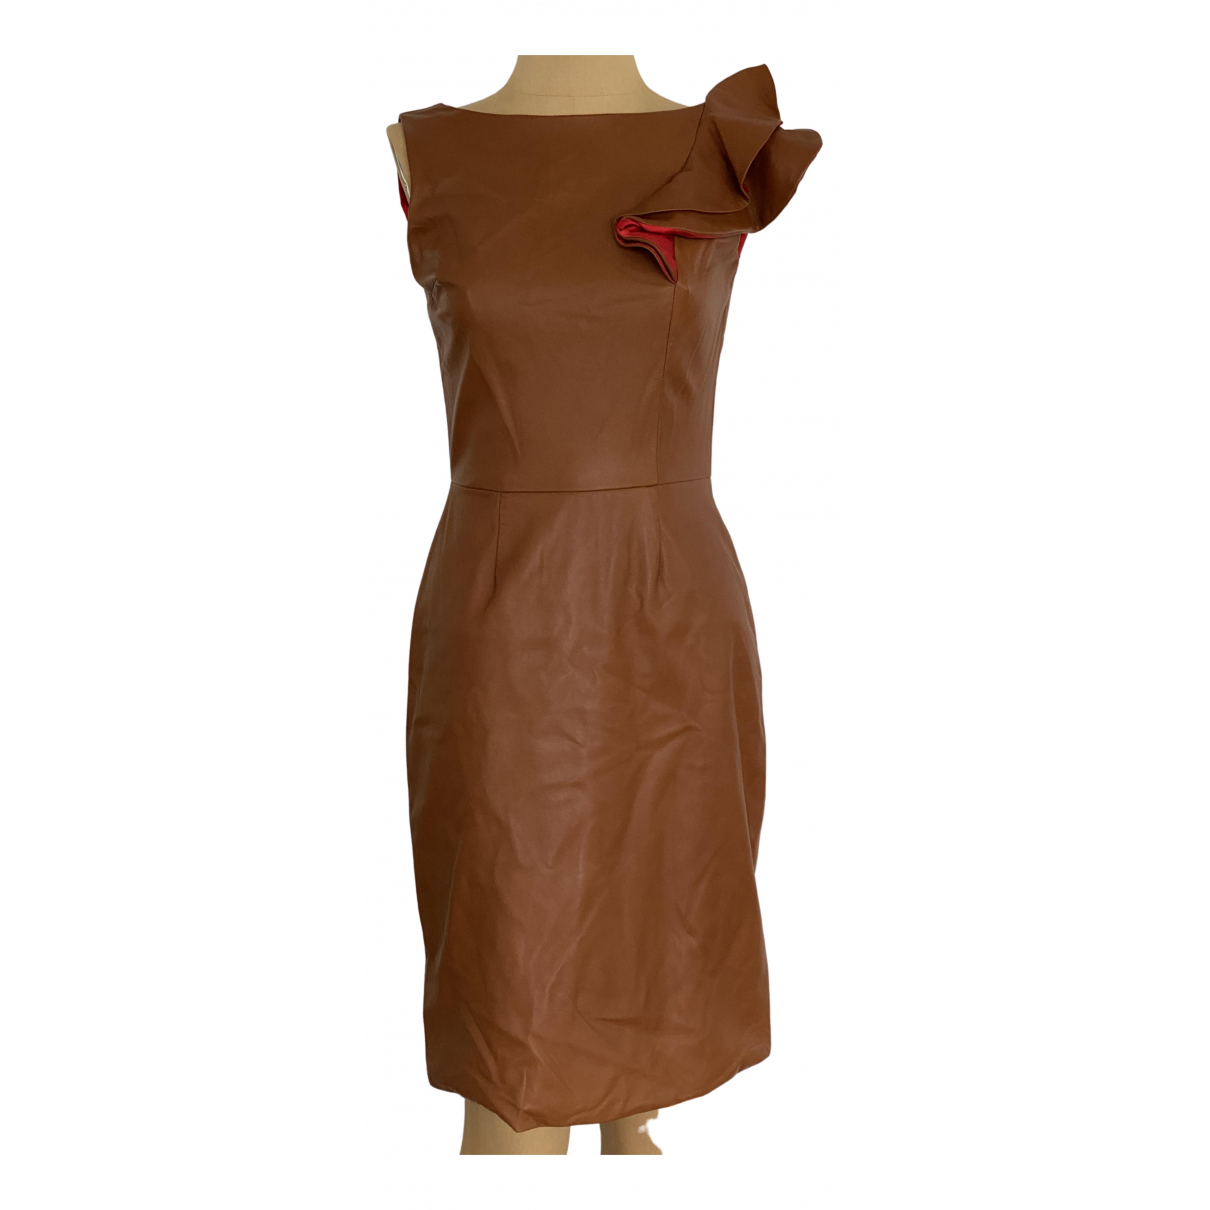 Christian Siriano \N Camel Leather dress for Women 4 US